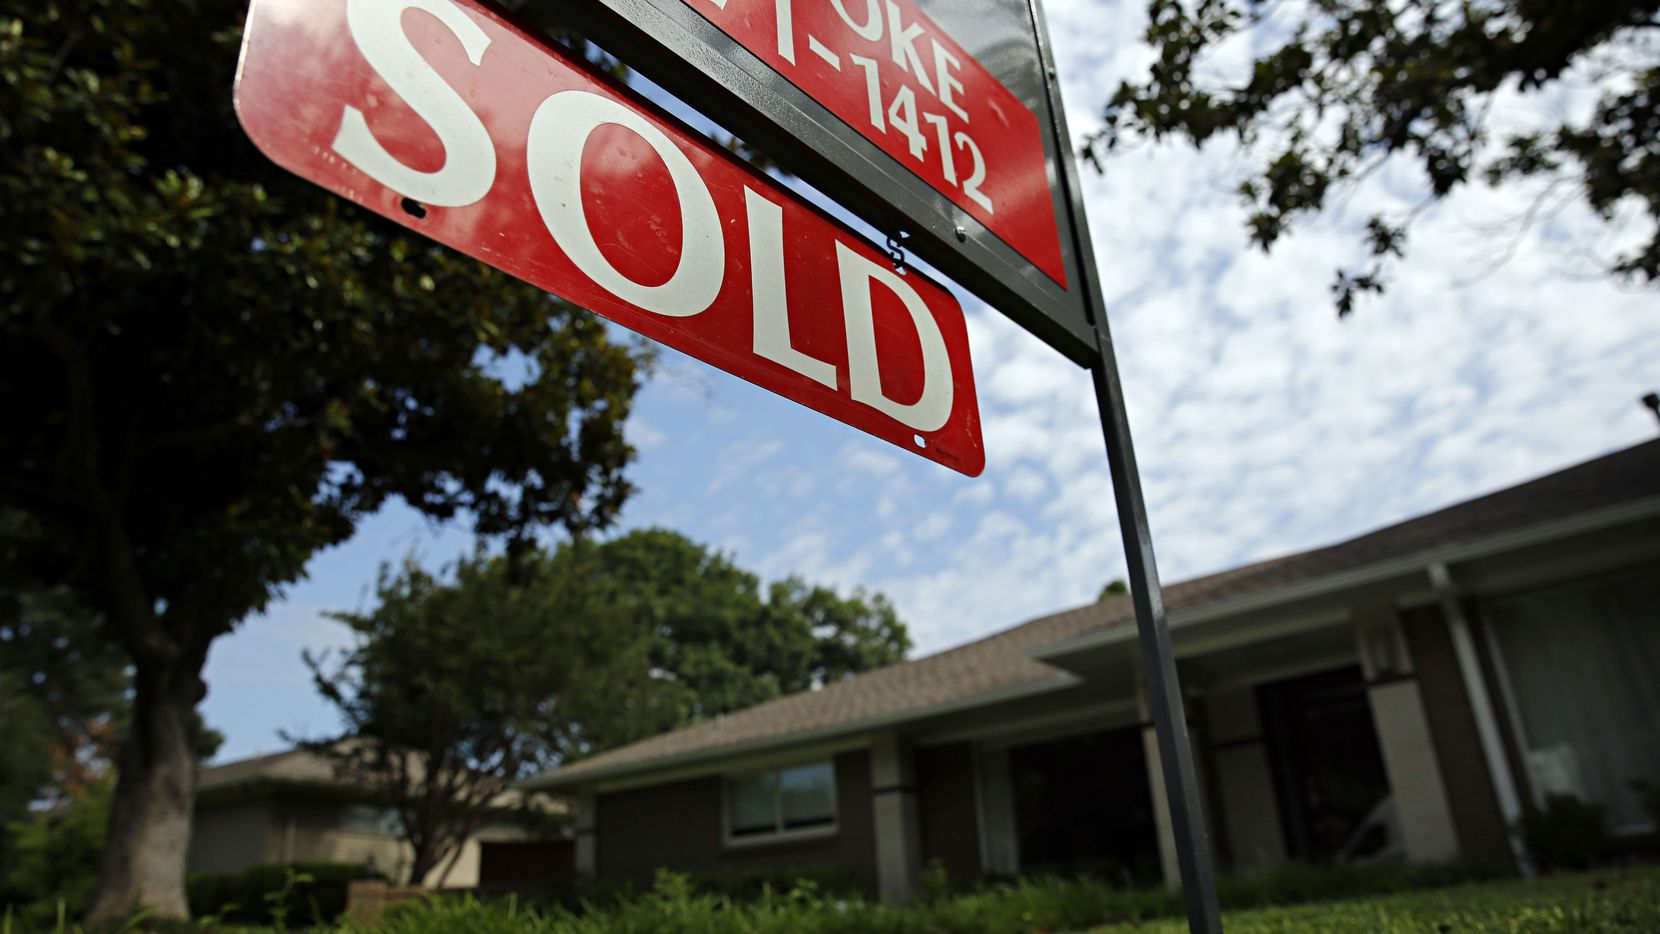 North Texas home sales were down 25% in May from a year ago.